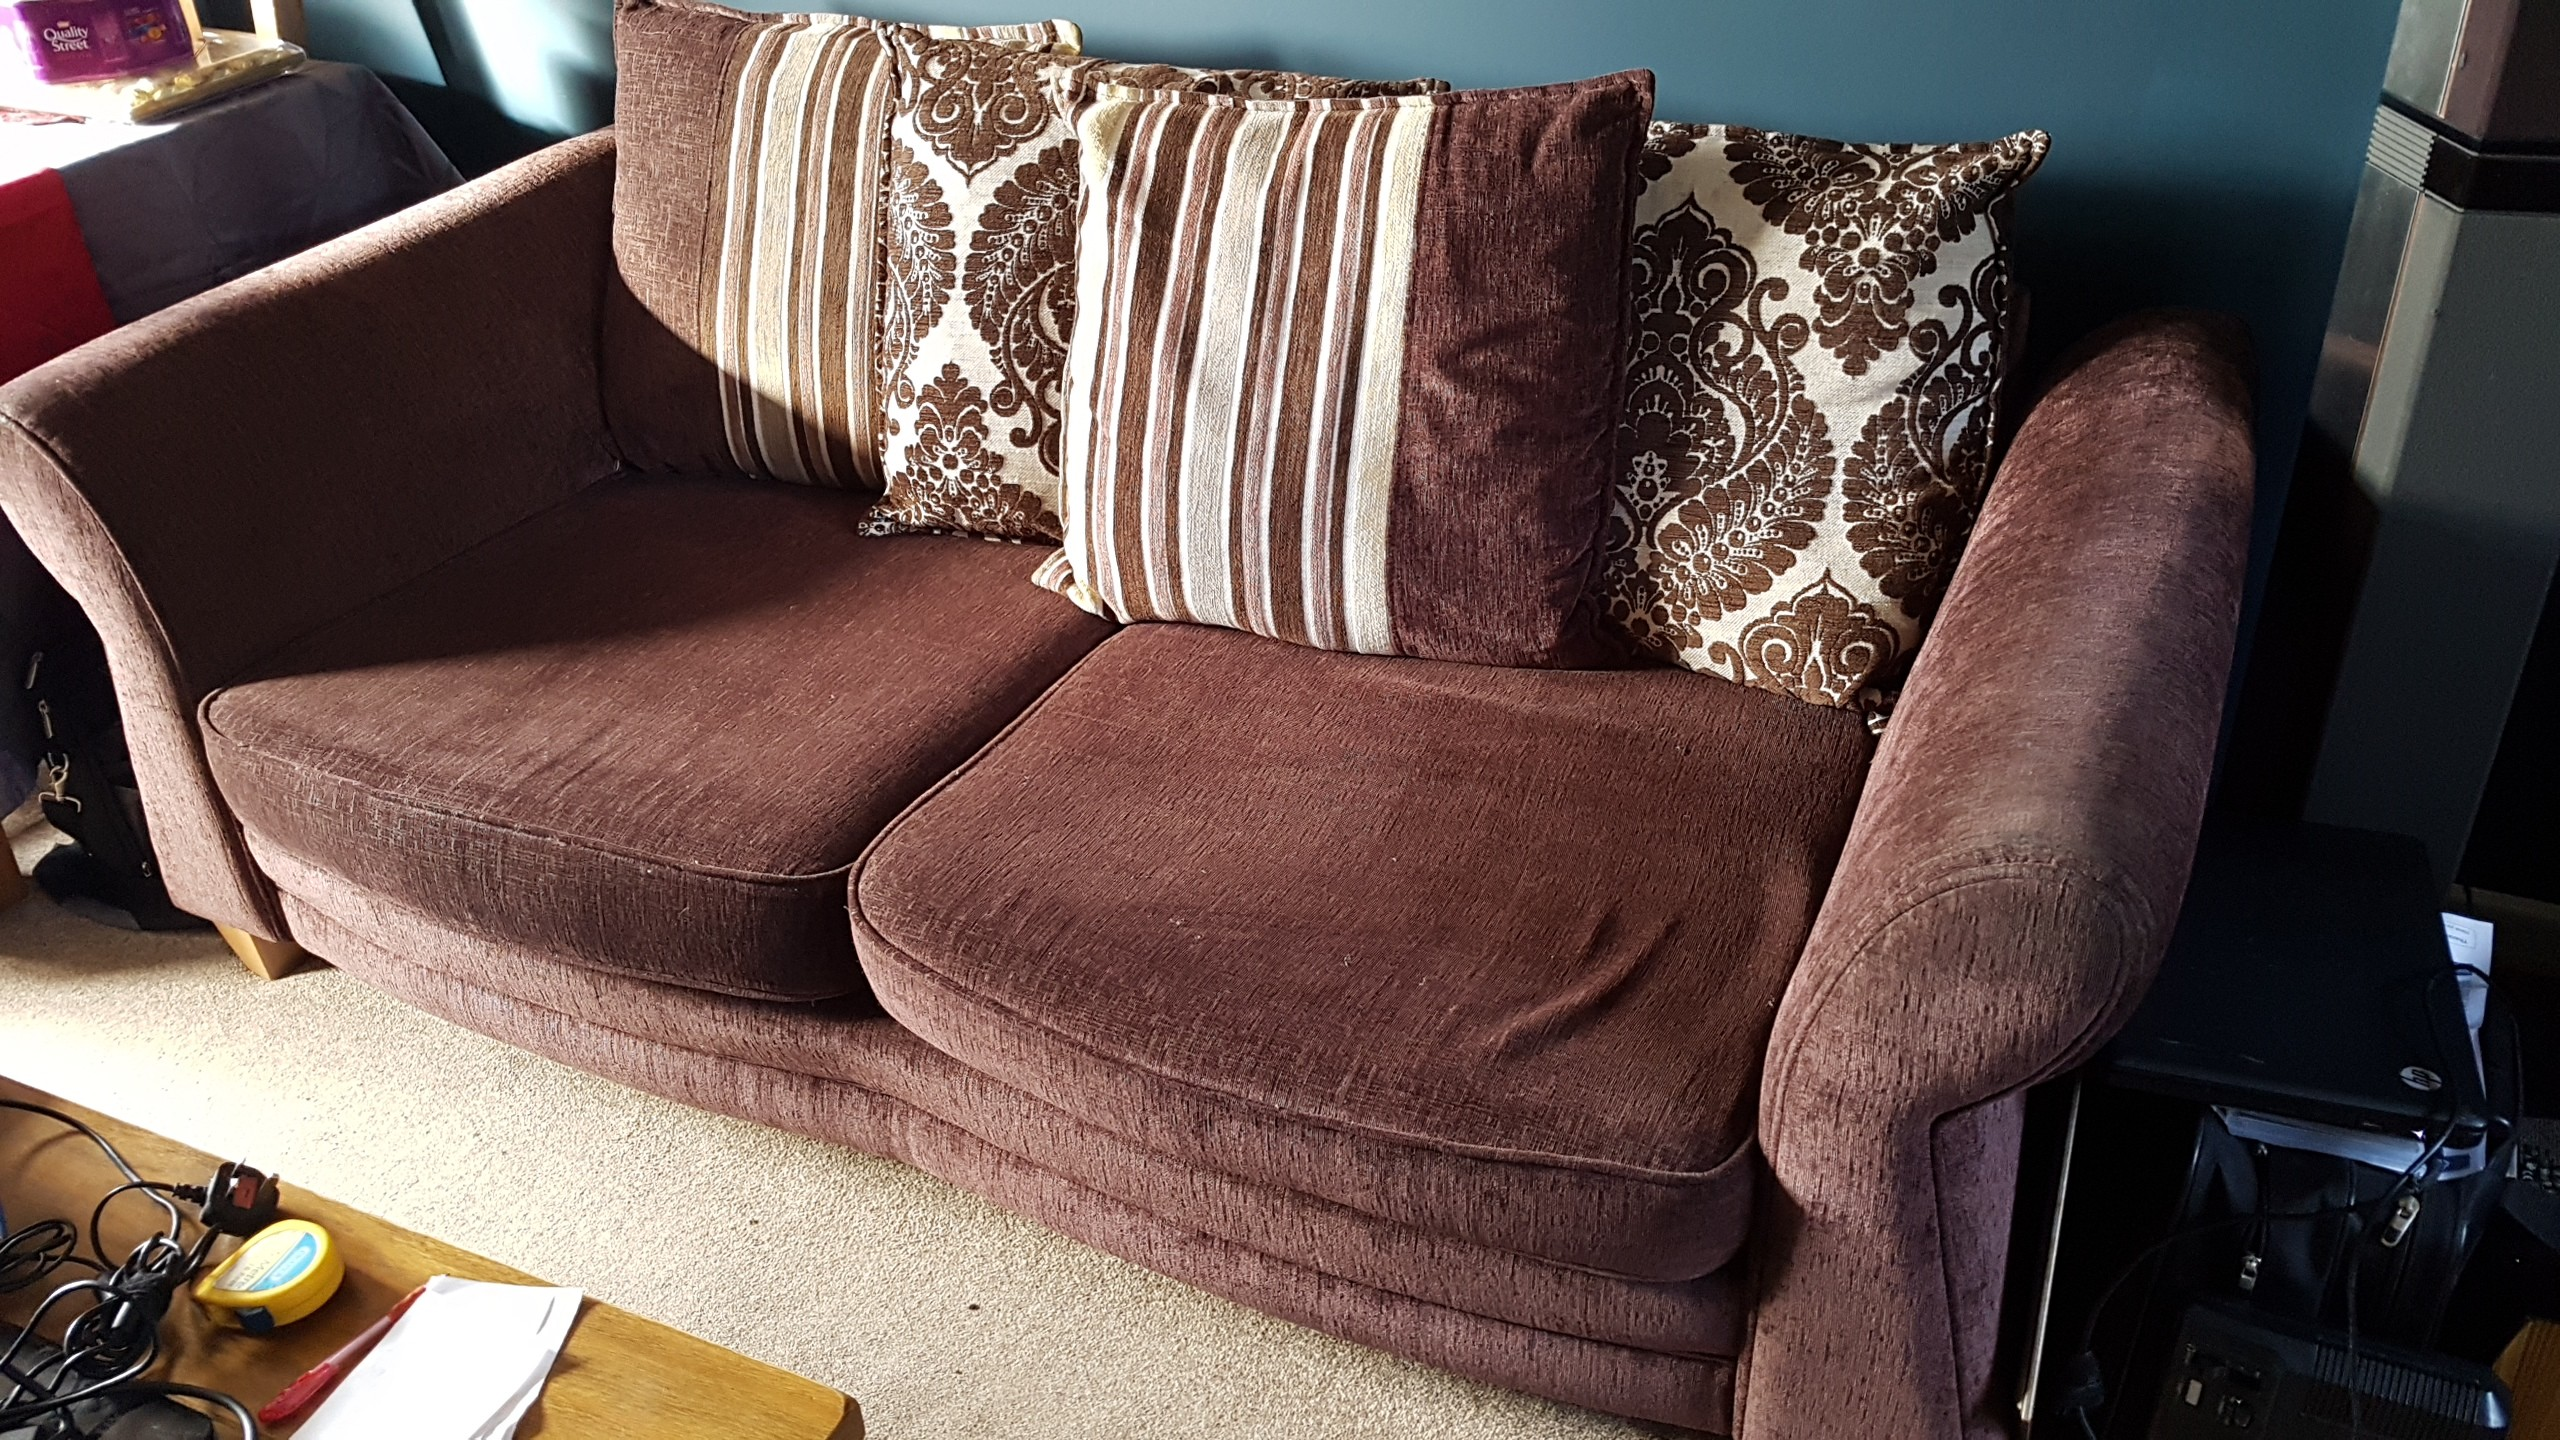 Sofa 2m Simple Cost Around e Has Hardly Been Sat Seater And